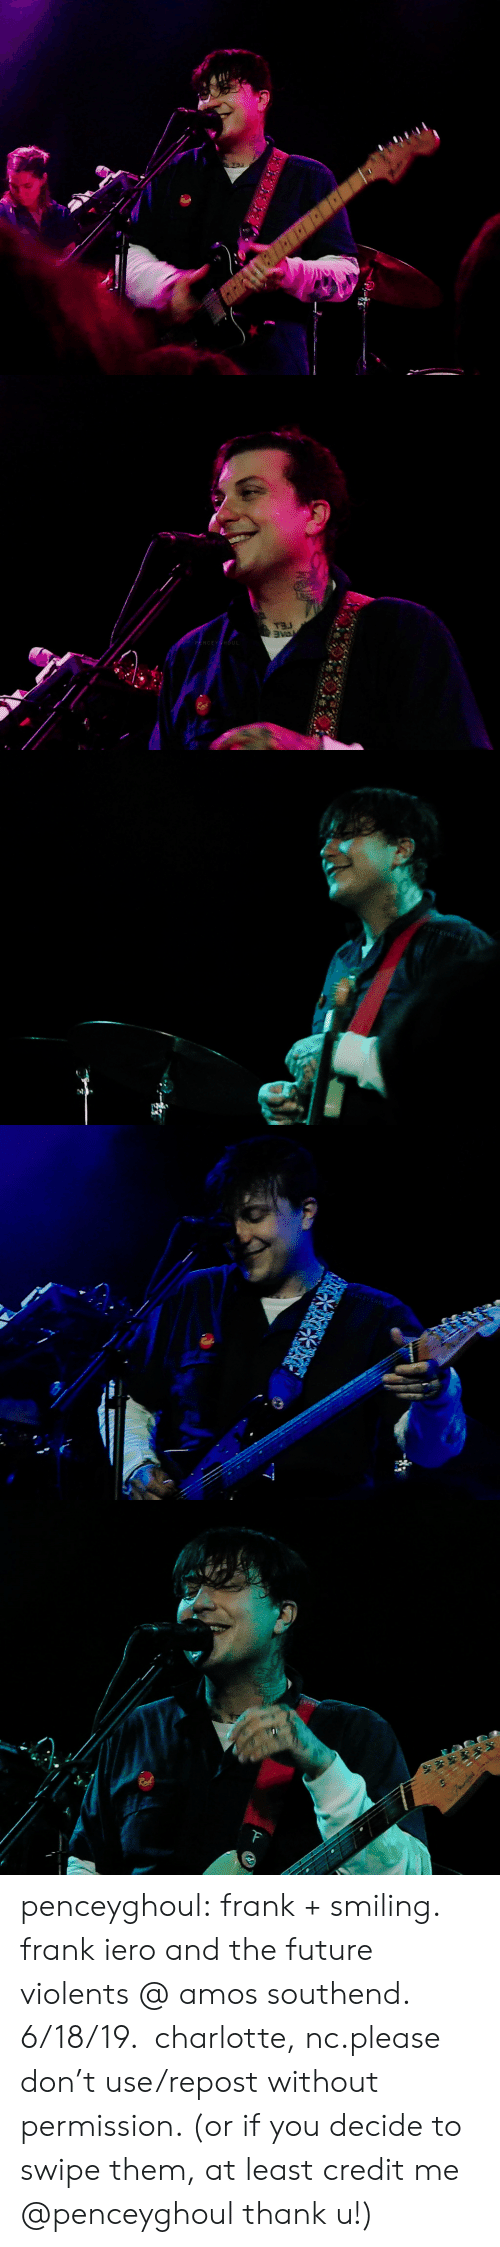 Future, Tumblr, and Blog: PENCEYGHO   DAE  PENCEYHOUL   PENCEYGH oUI   GHOUL   ENCEYGHOUt  F penceyghoul:  frank + smiling. frank iero and the future violents@ amos southend. 6/18/19. charlotte, nc.please don't use/repost without permission. (or if you decide to swipe them, at least credit me @penceyghoul thank u!)